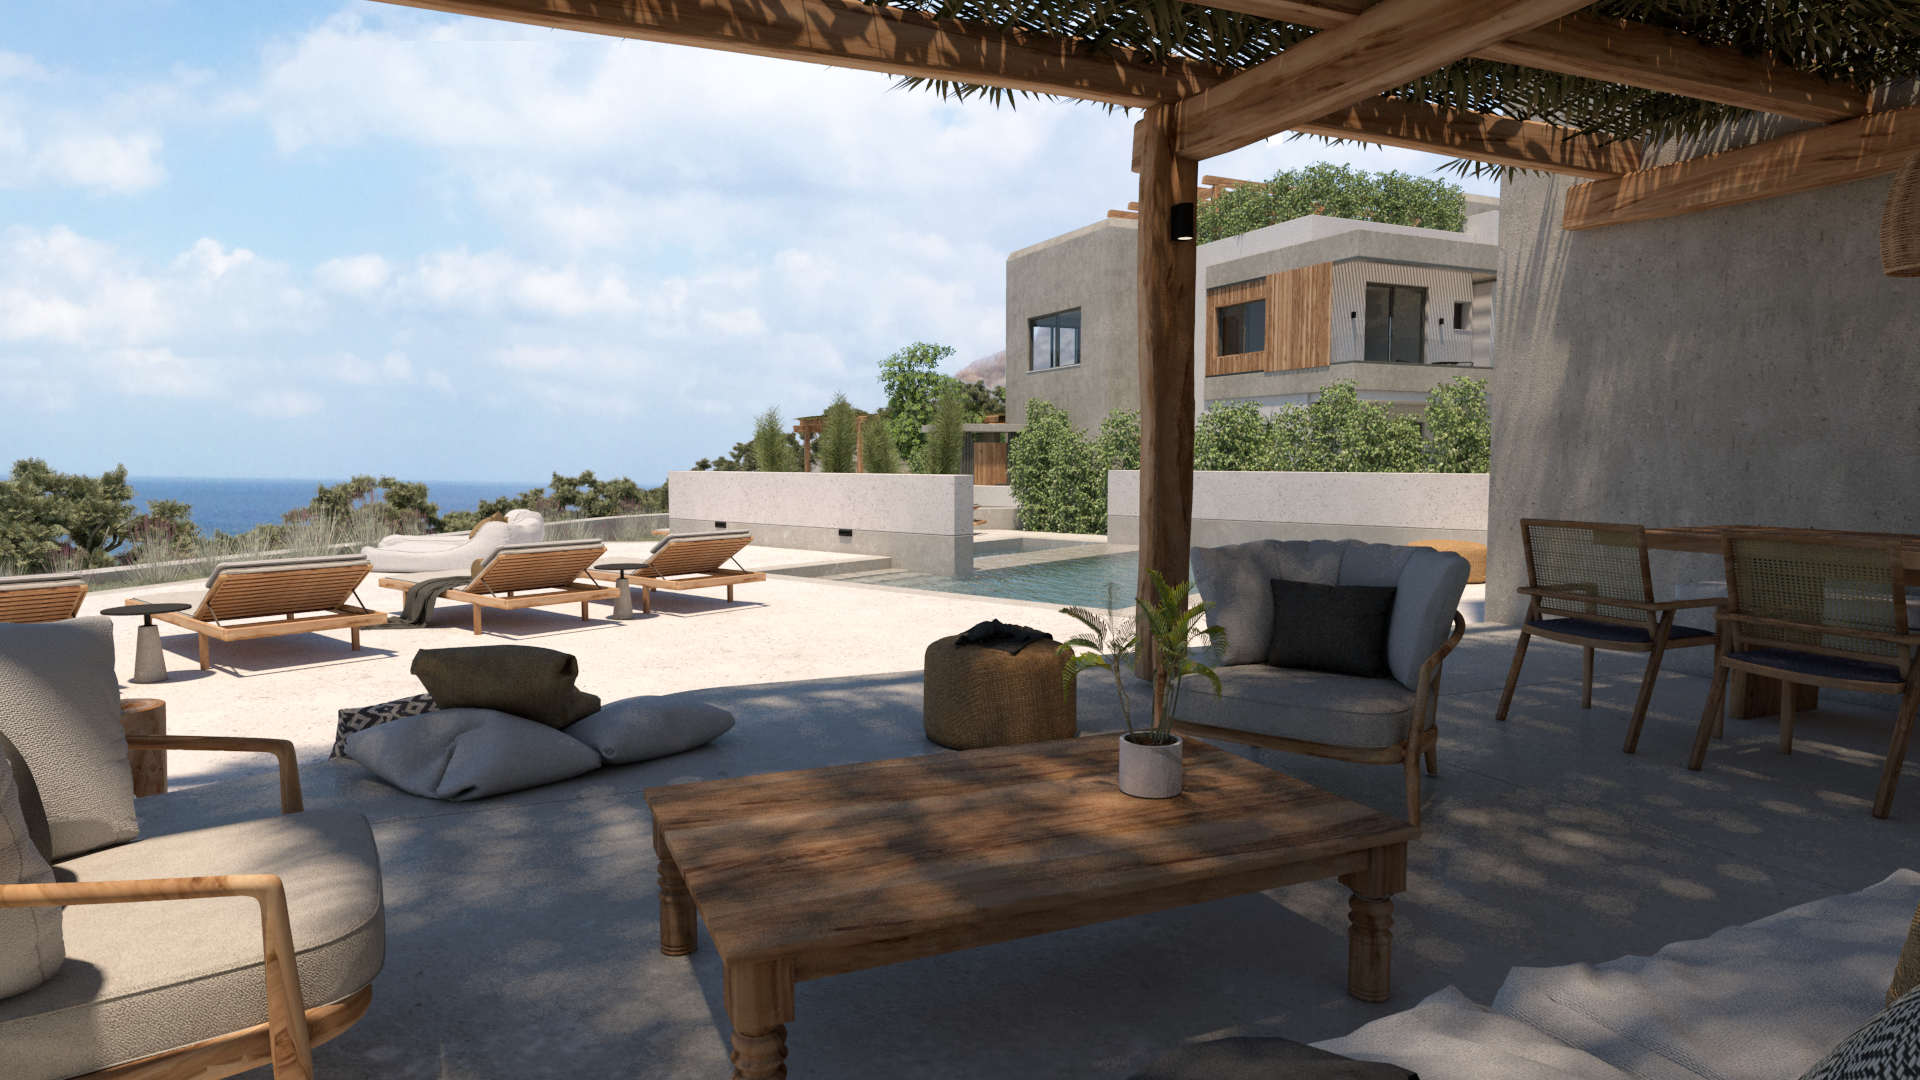 0036-09-parti-architecture-holiday-homes-in-kissamos-chania-crete